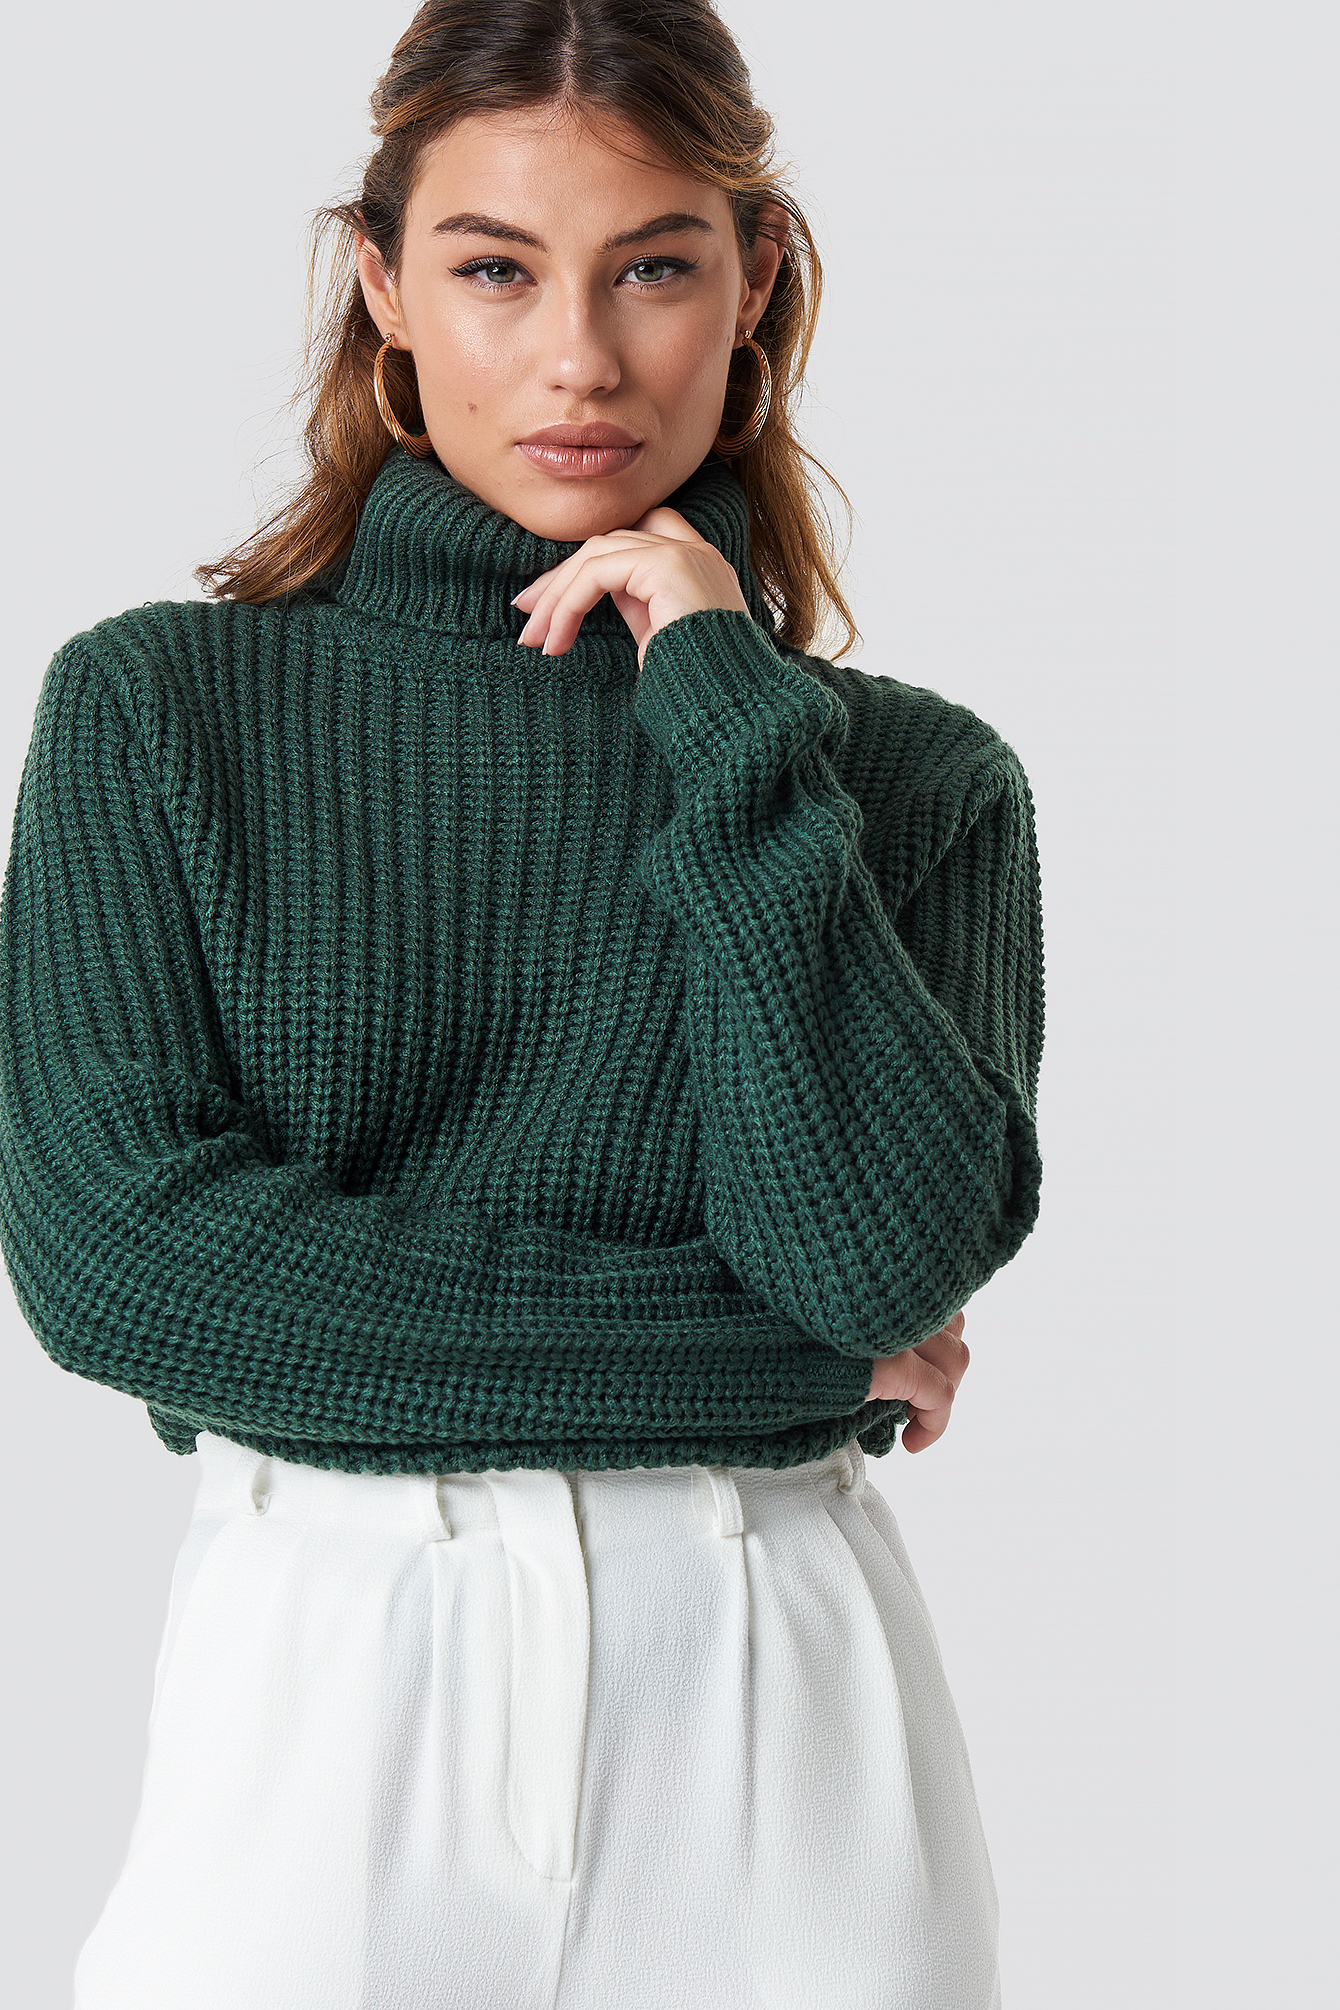 rut&circle -  Tinelle rollneck knit - Green